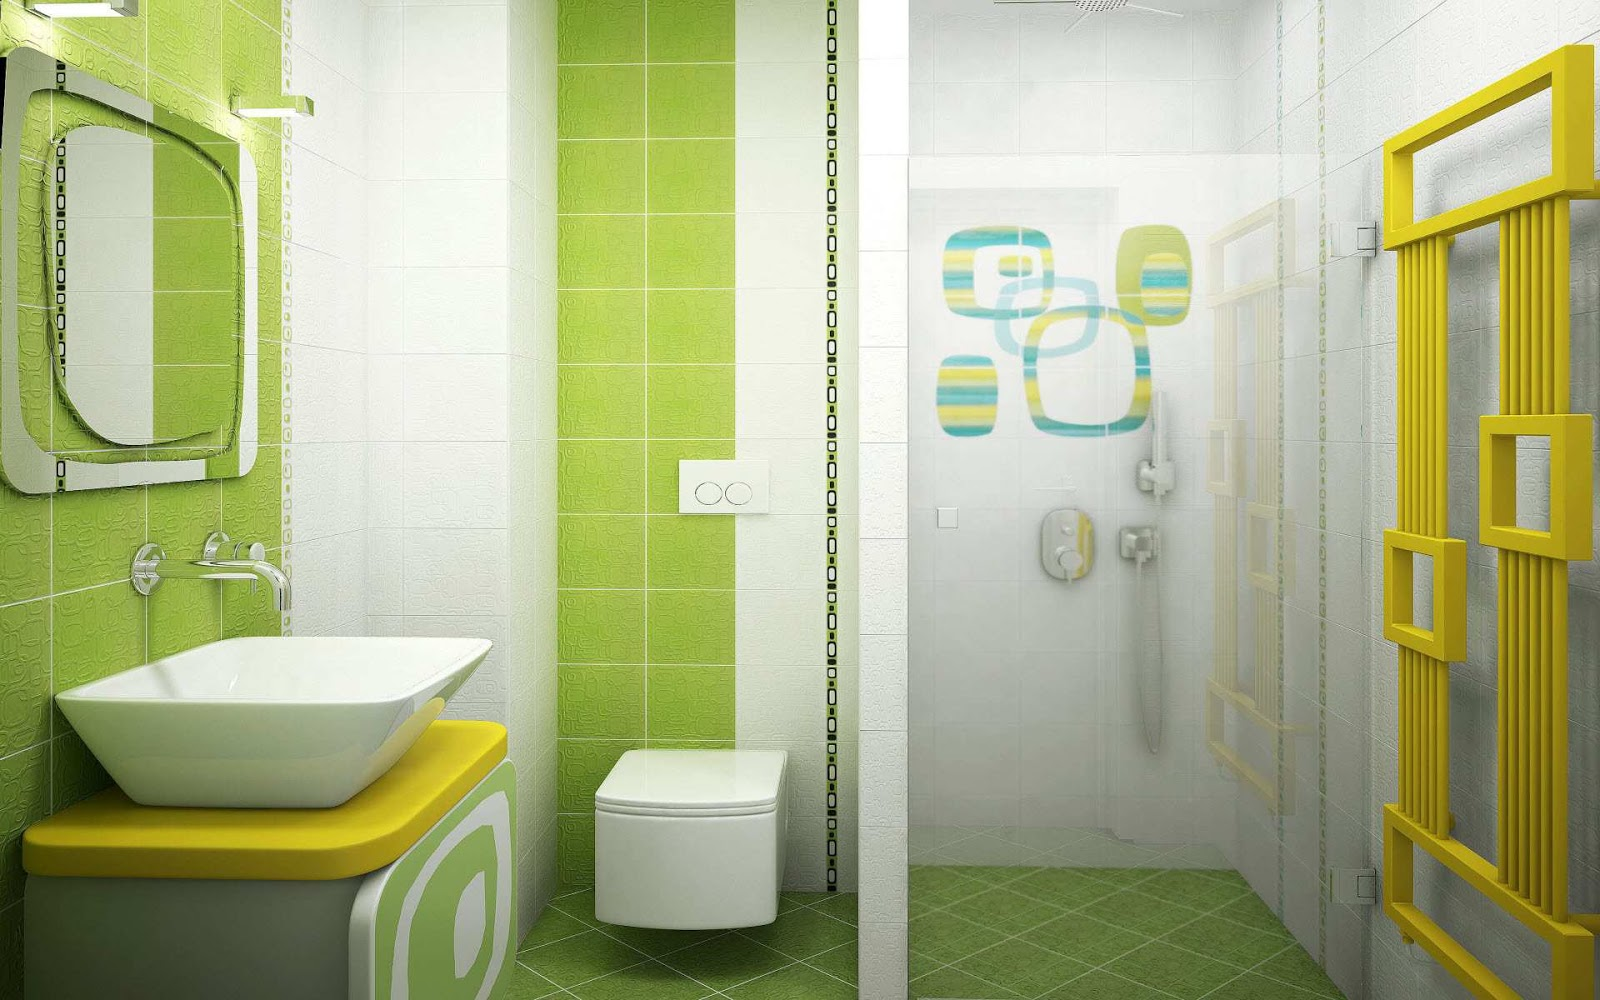 Modern homes interiors wash rooms tiles designs setting ideas